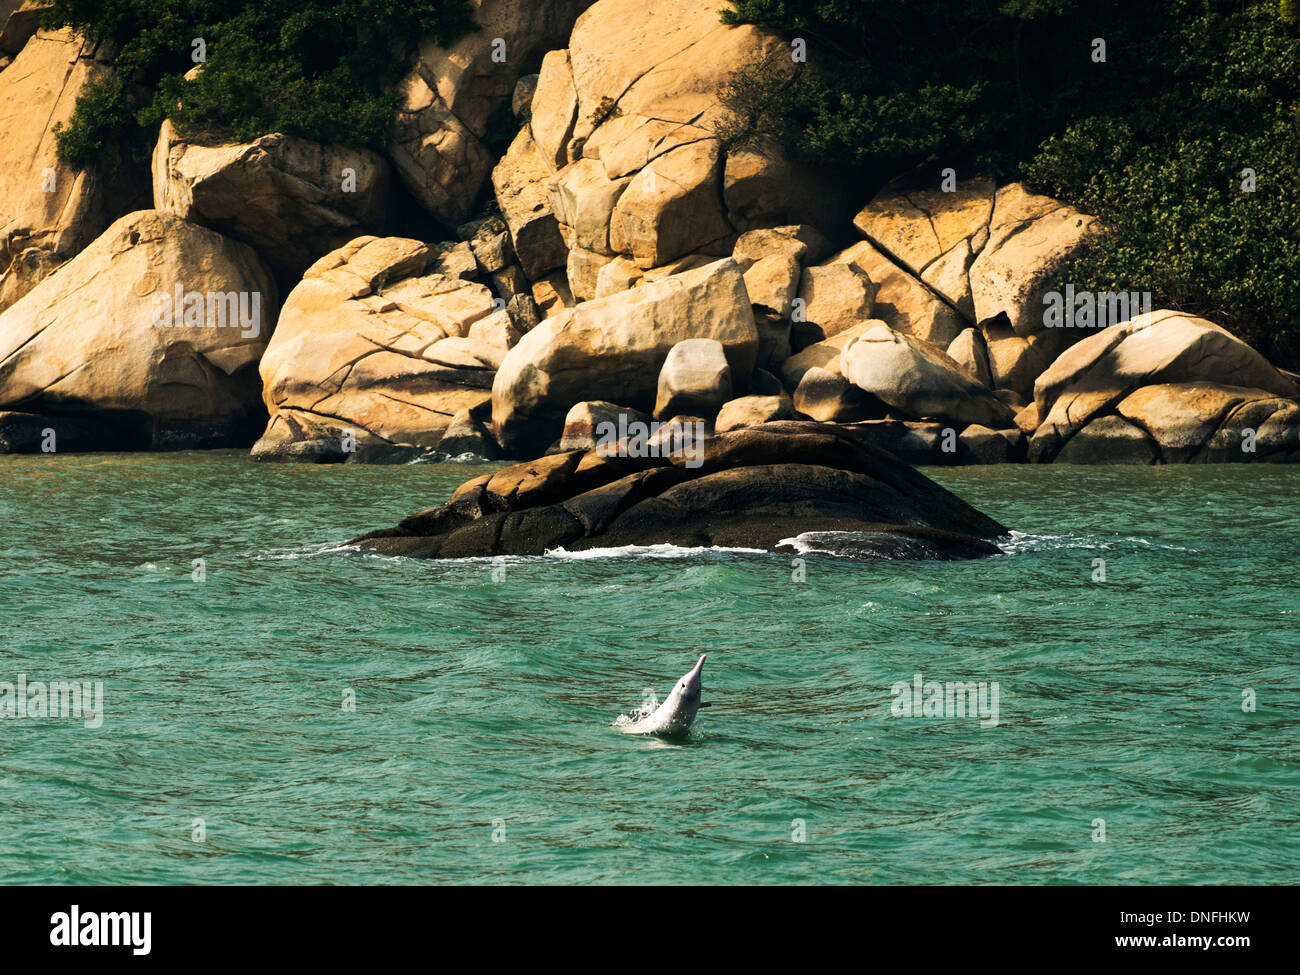 The beautiful Chinese white dolphins swimming in the open sea north of Lantau island in Hong Kong - Stock Image